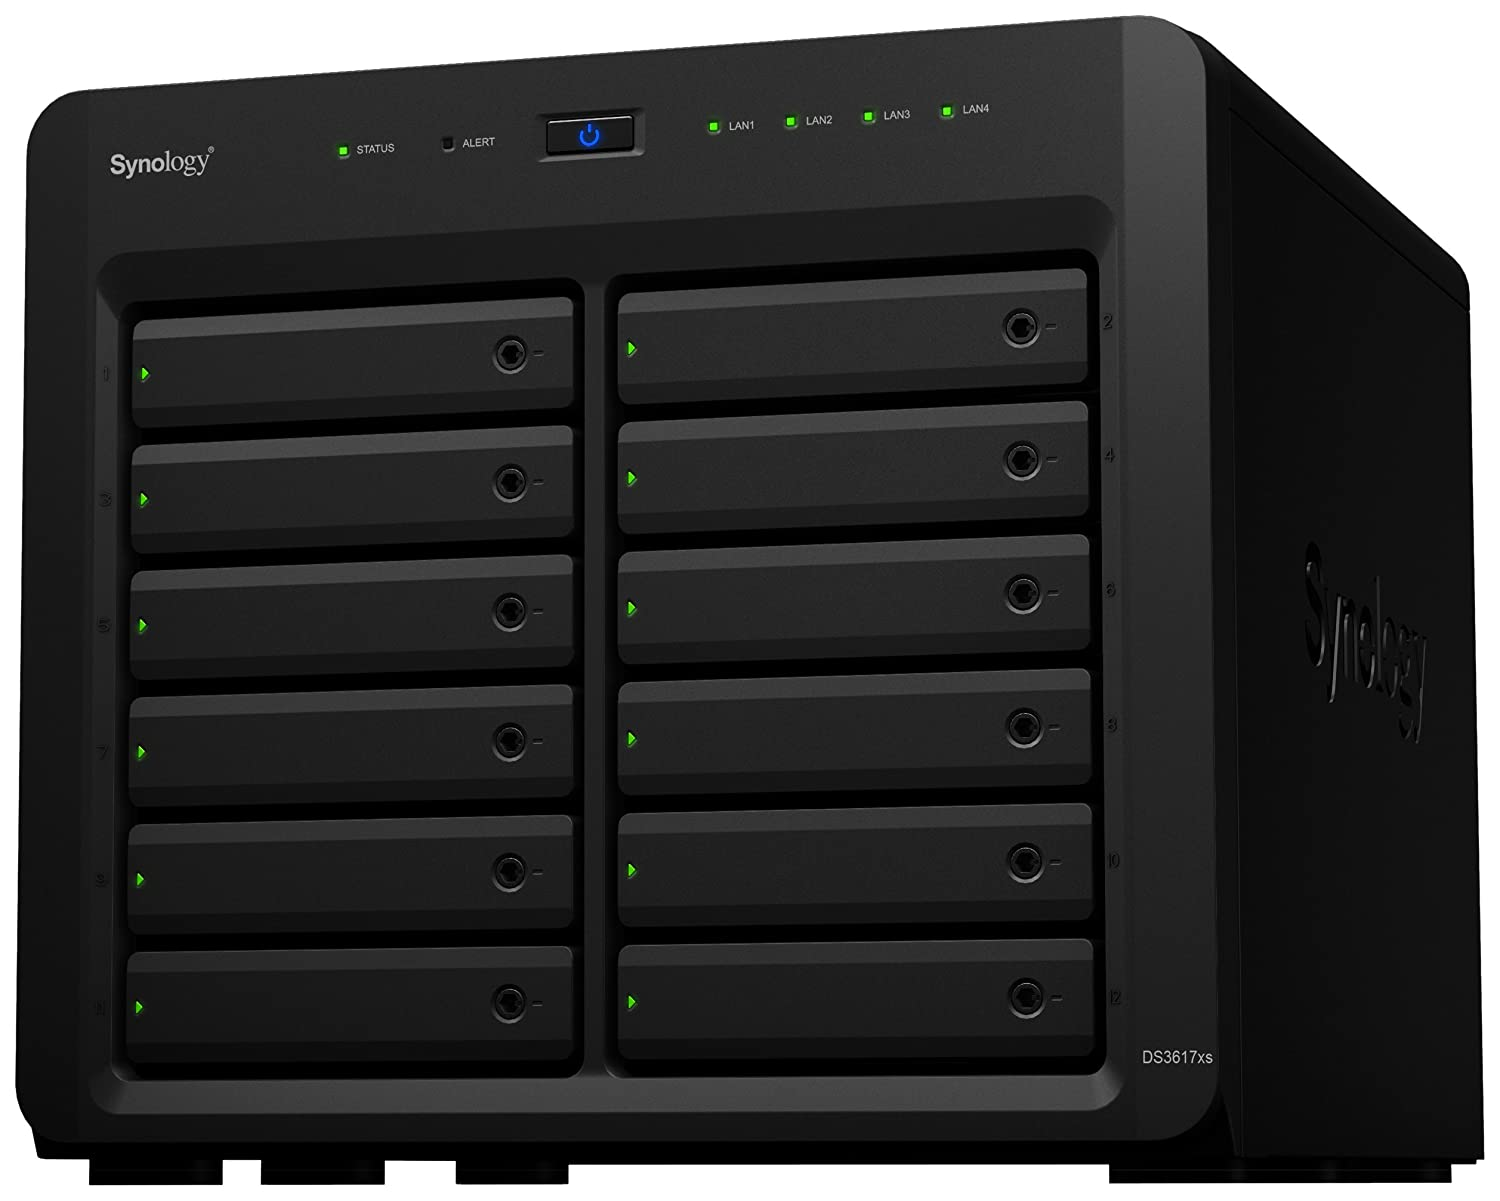 Synology DS3617xs NAS Disk Station, Diskless, 12-Bay